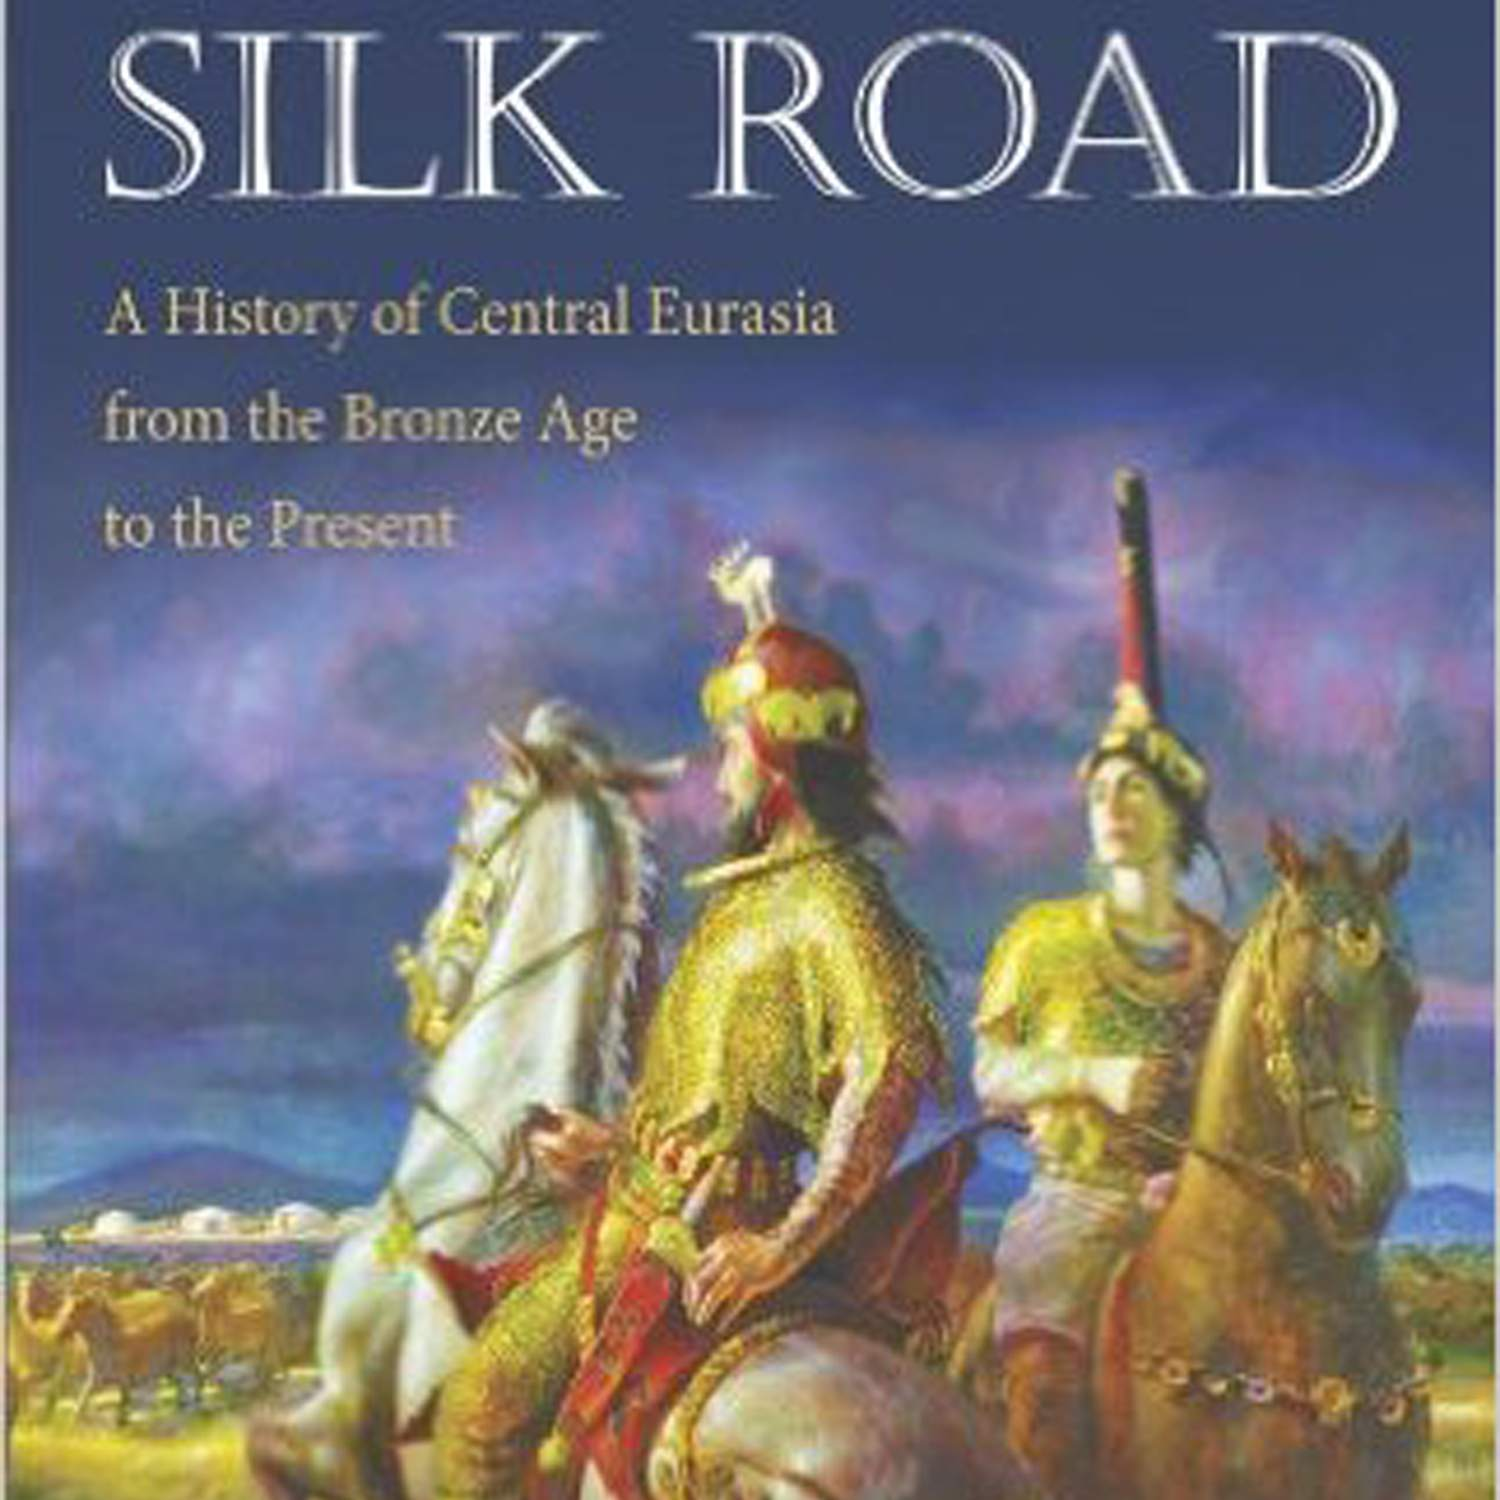 Trading Posts and Cities Along the Silk Road